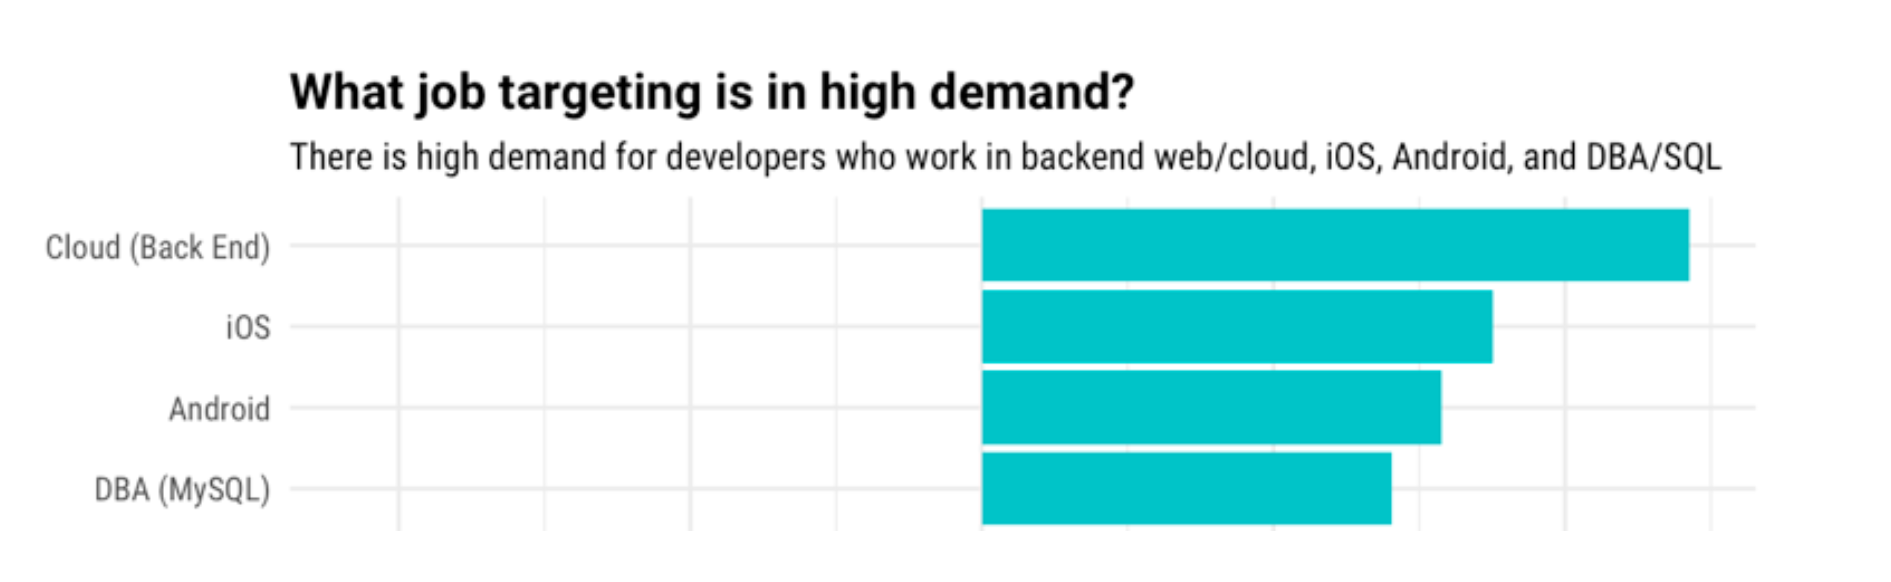 what job targeting is in high demand